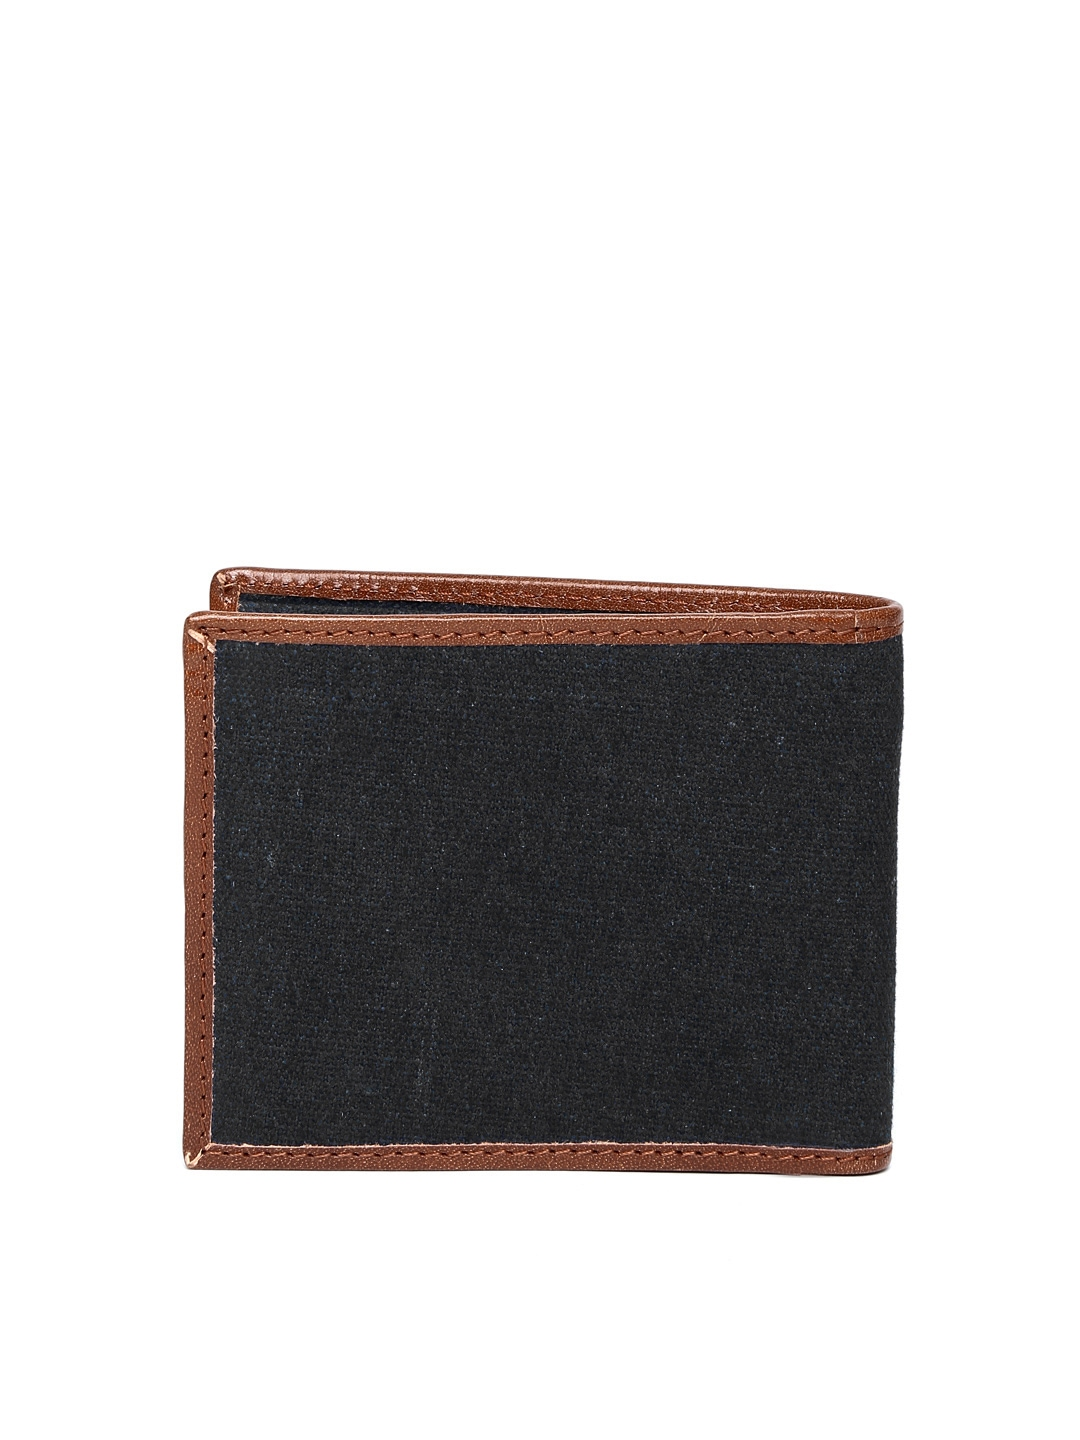 NEW BOXED UNITED COLORS OF BENETTON GARBO CREAM SMALL WALLET